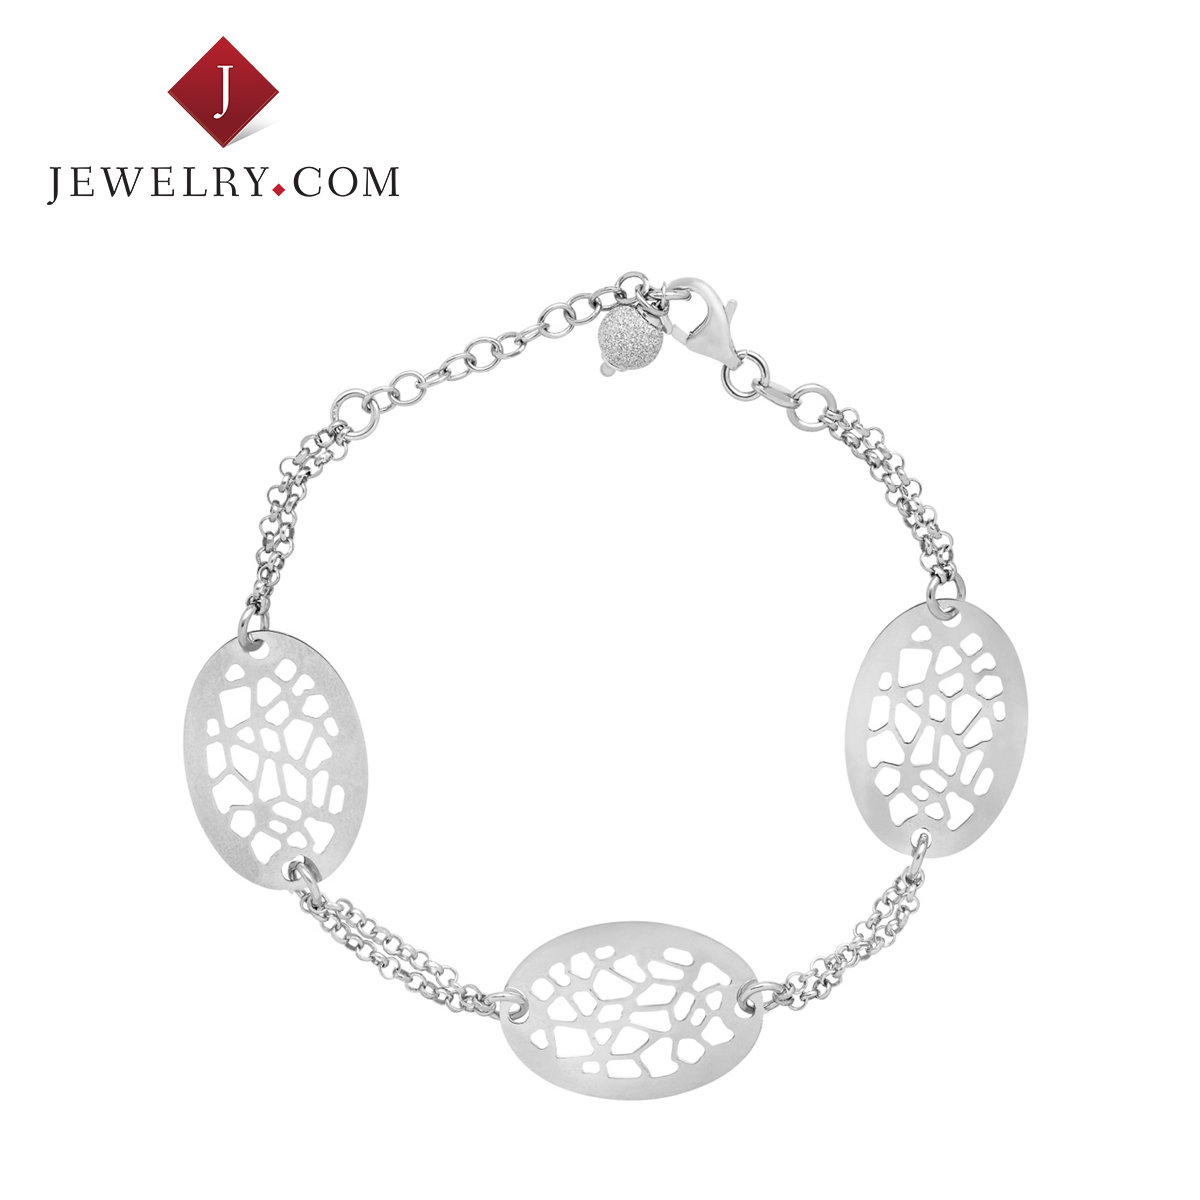 Jewelry.com official 925 silver oval bracelet new female models fashion charm wild stenciling